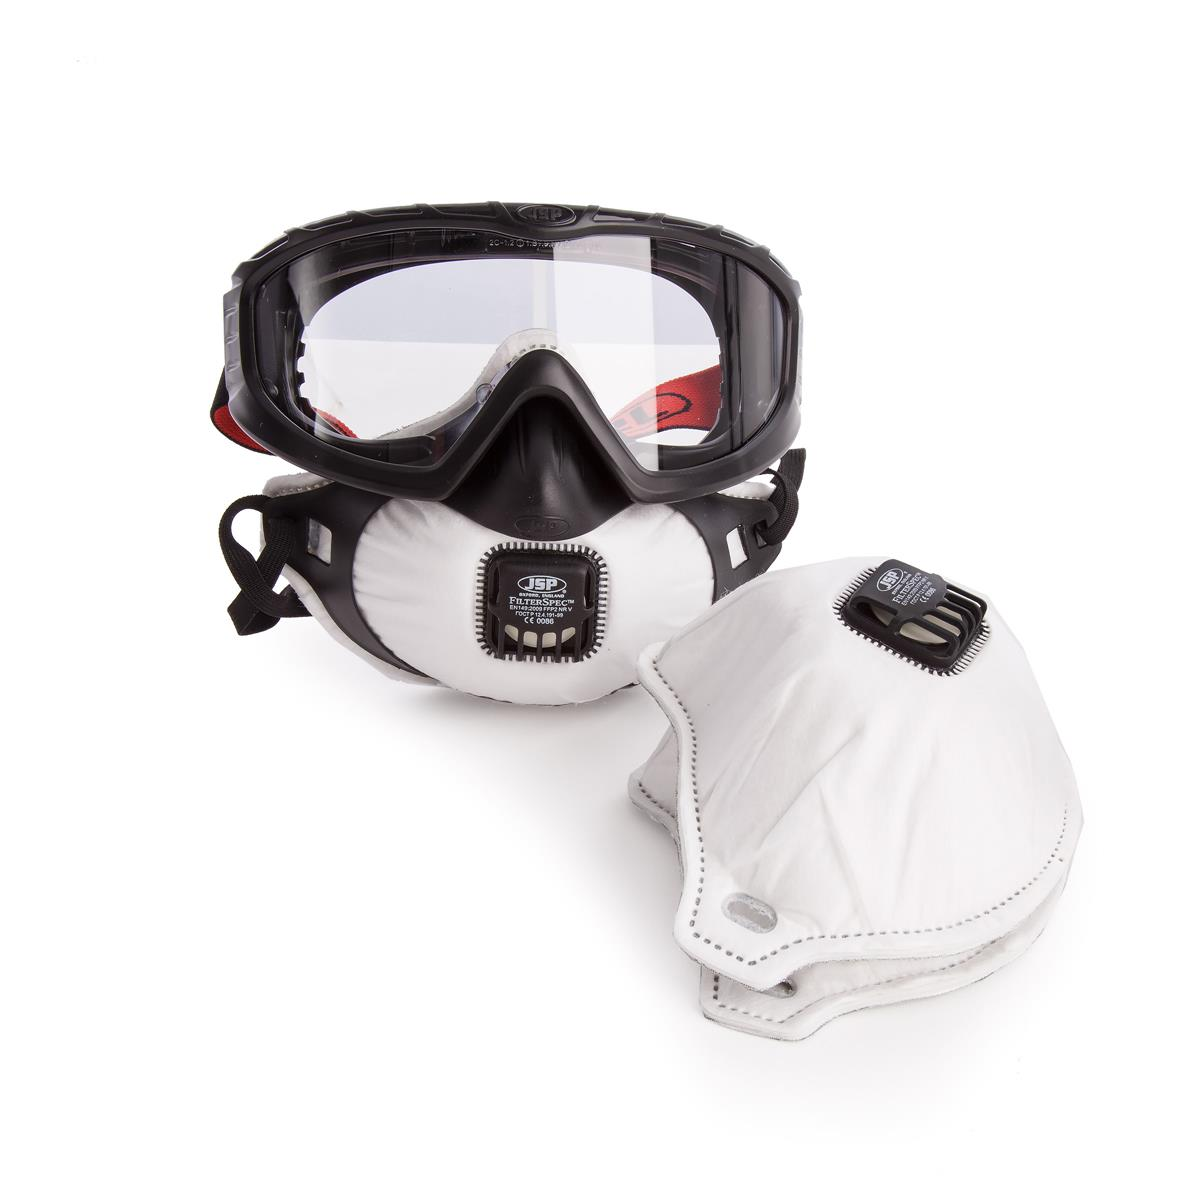 JSP FilterSpec Pro FMP2 Safety Goggle Mask Black 3 Valved Filters Anti-Mist Lens Clear Ref AGE120-201-100